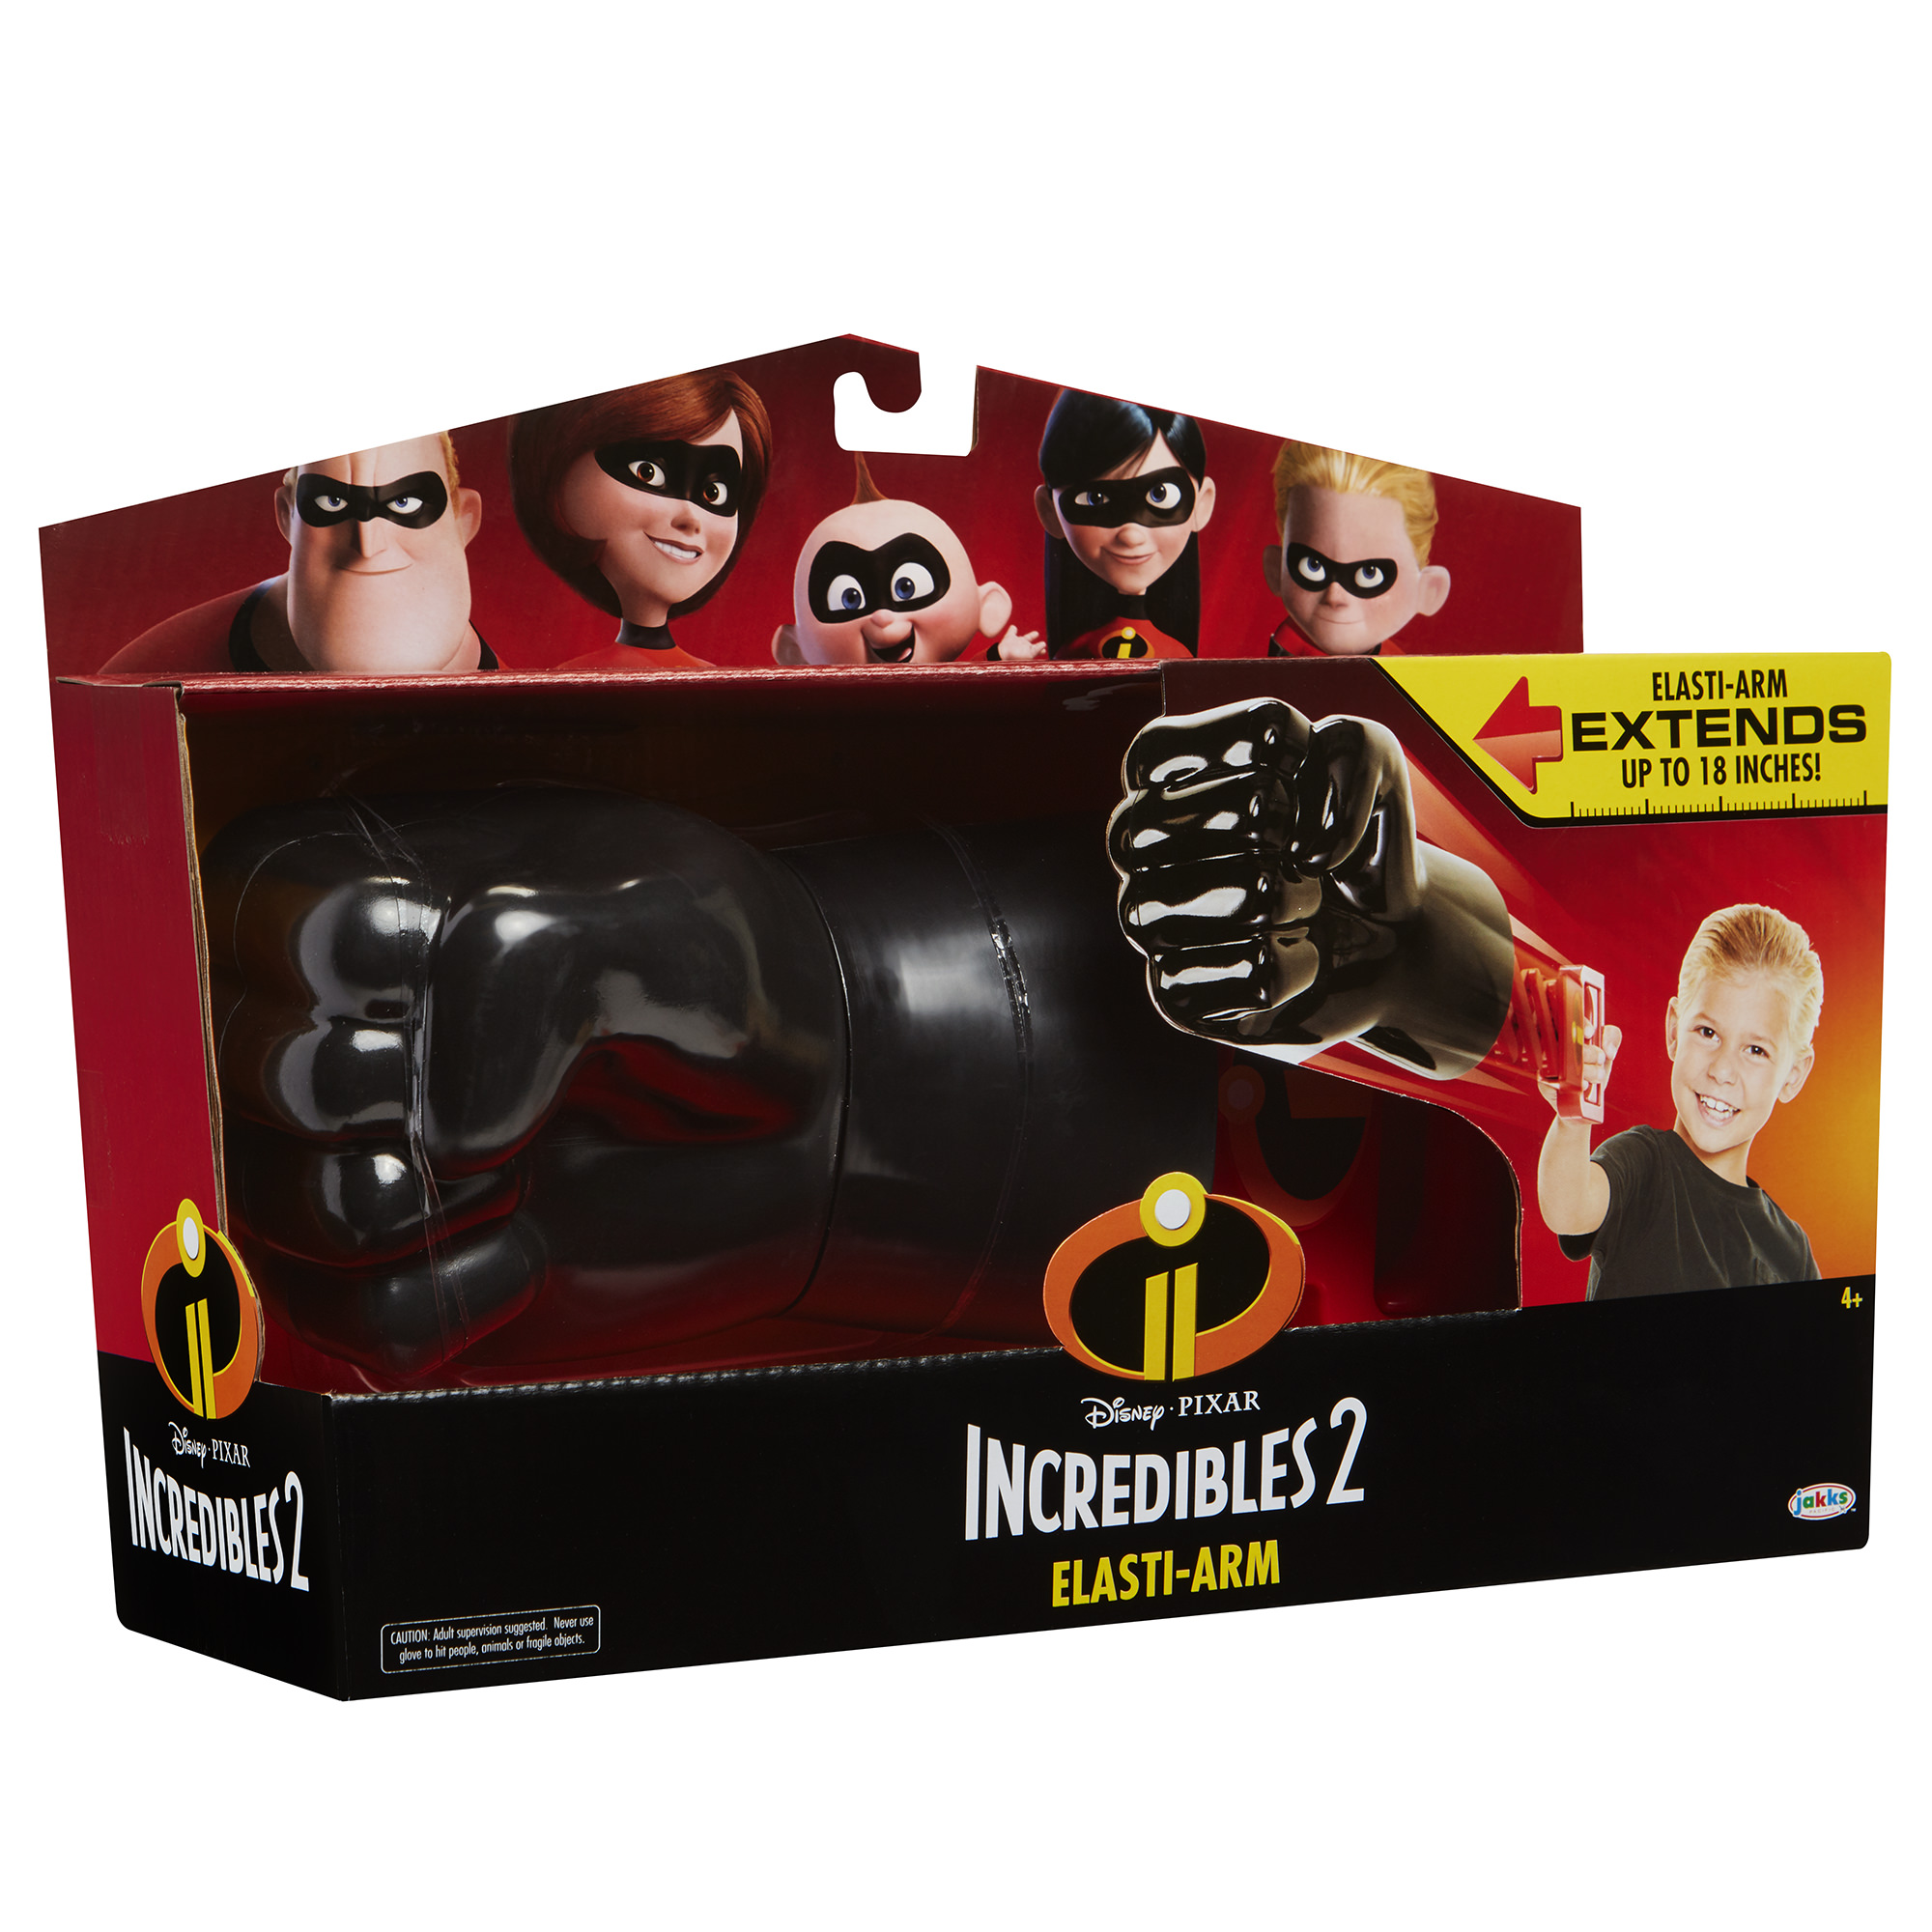 Incredibles 2 Elasti-Arm